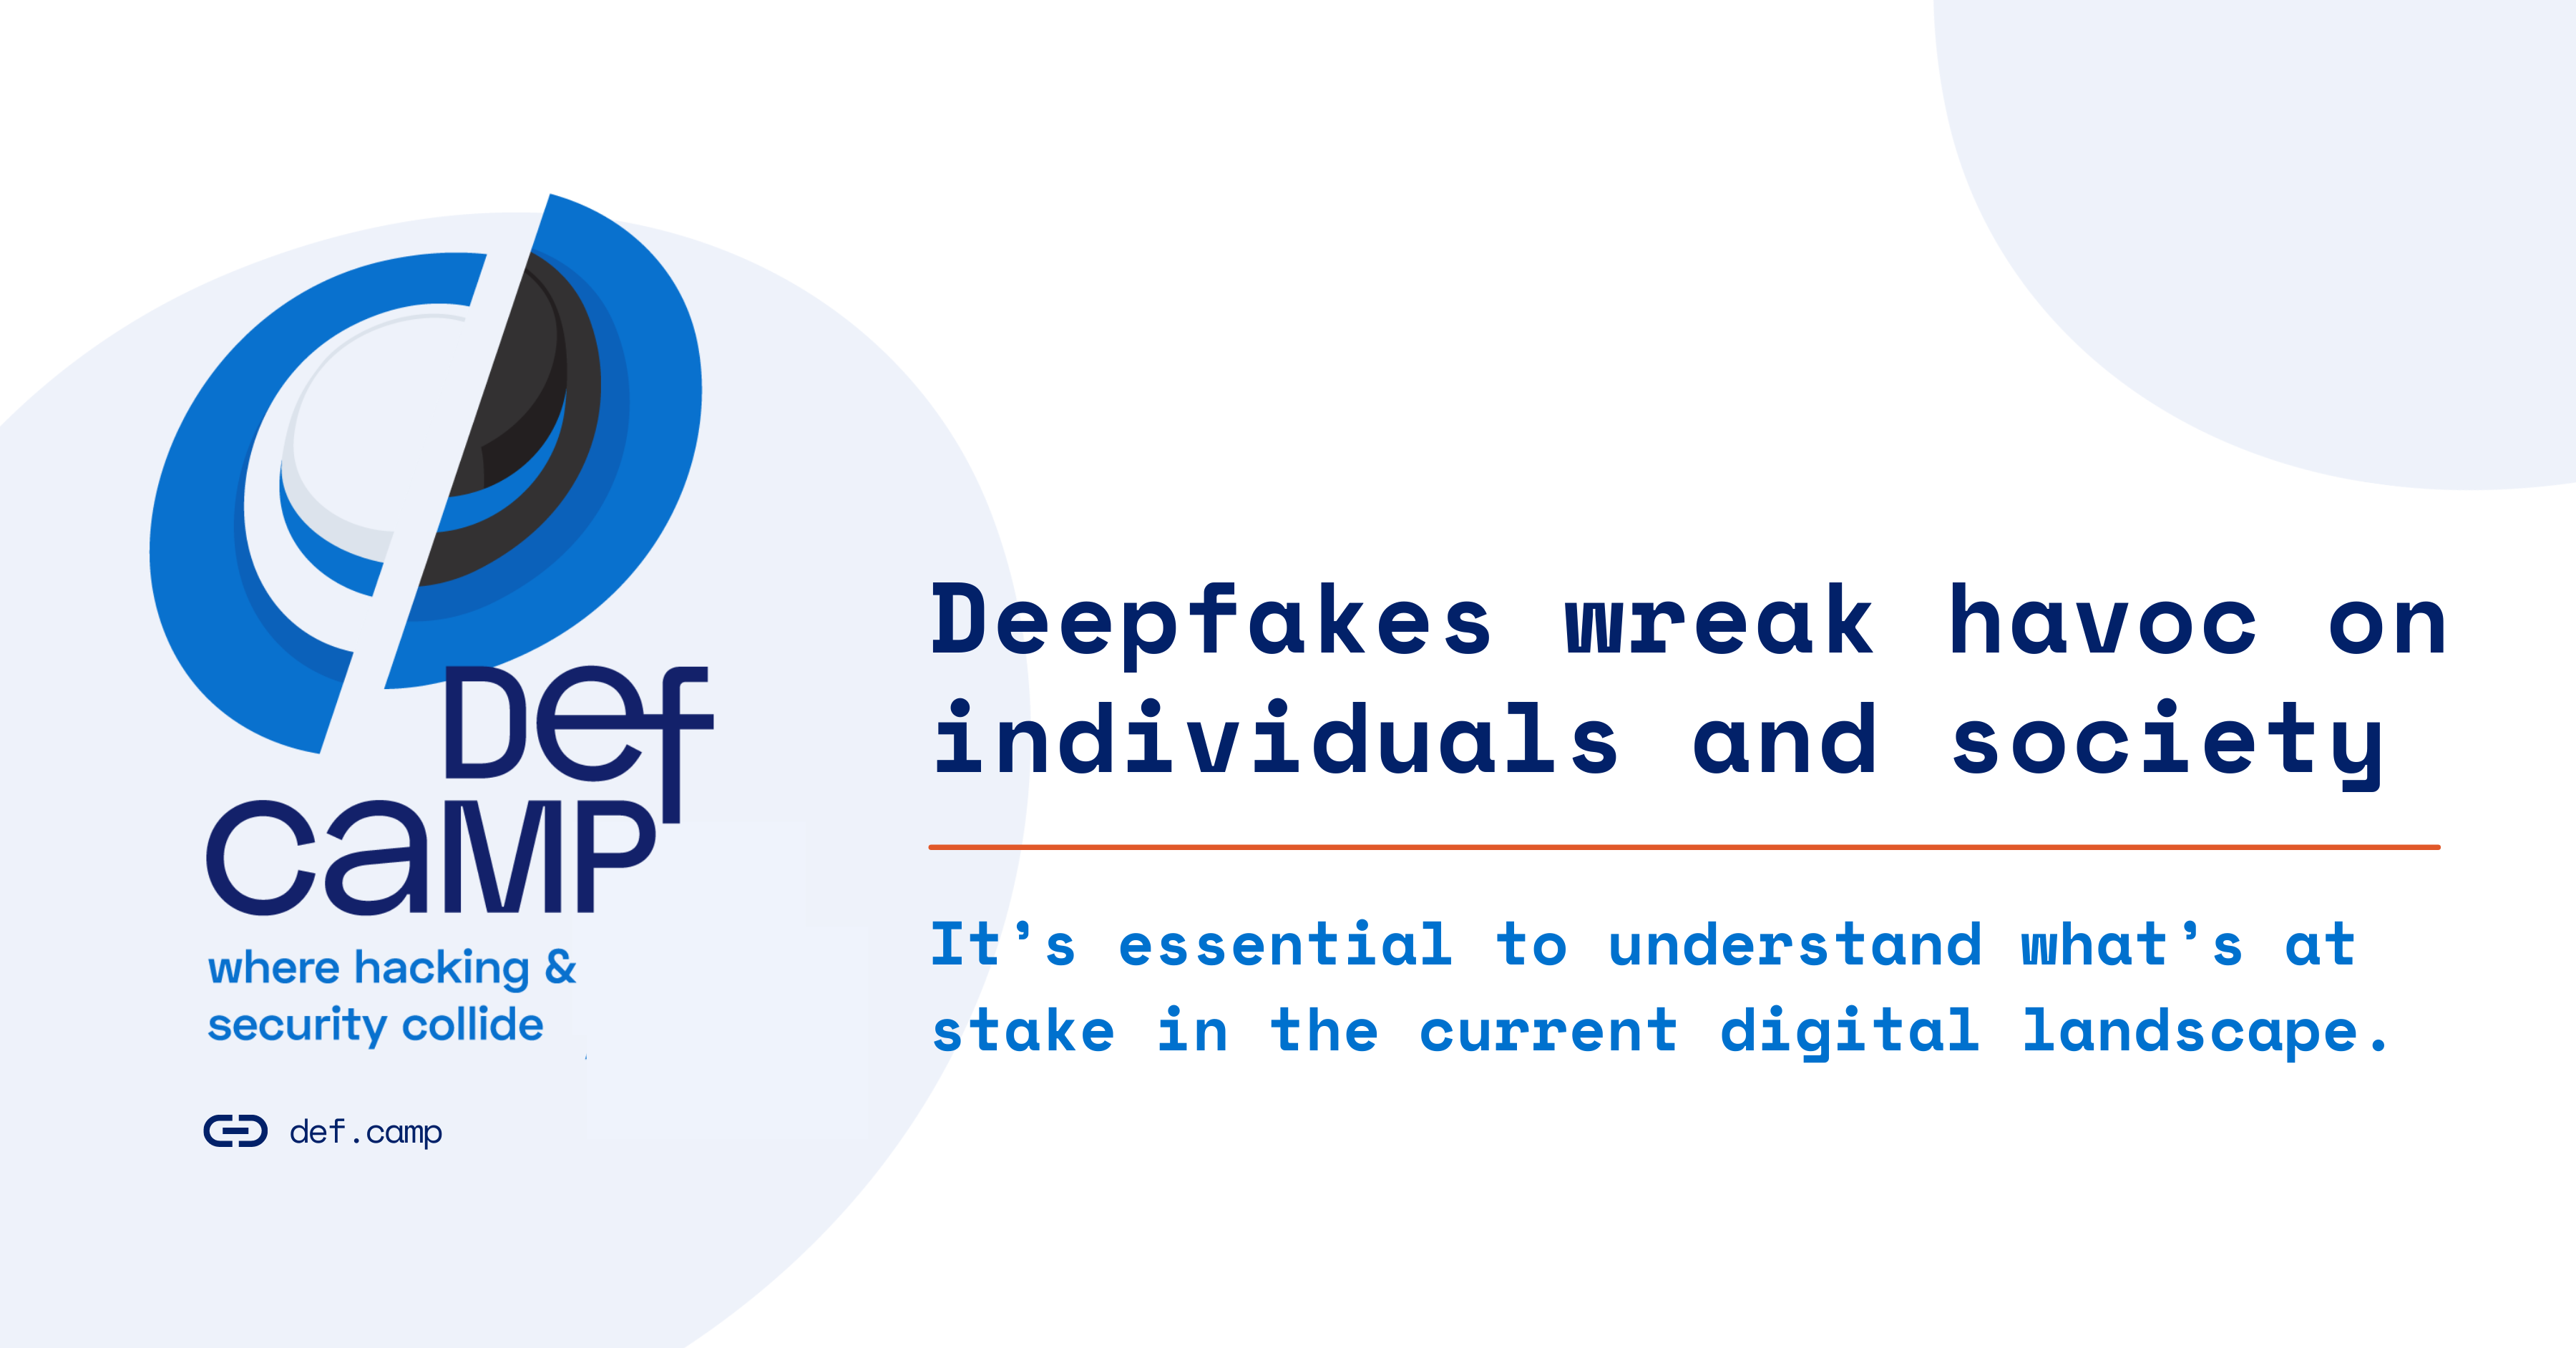 deepfakes cyber threat